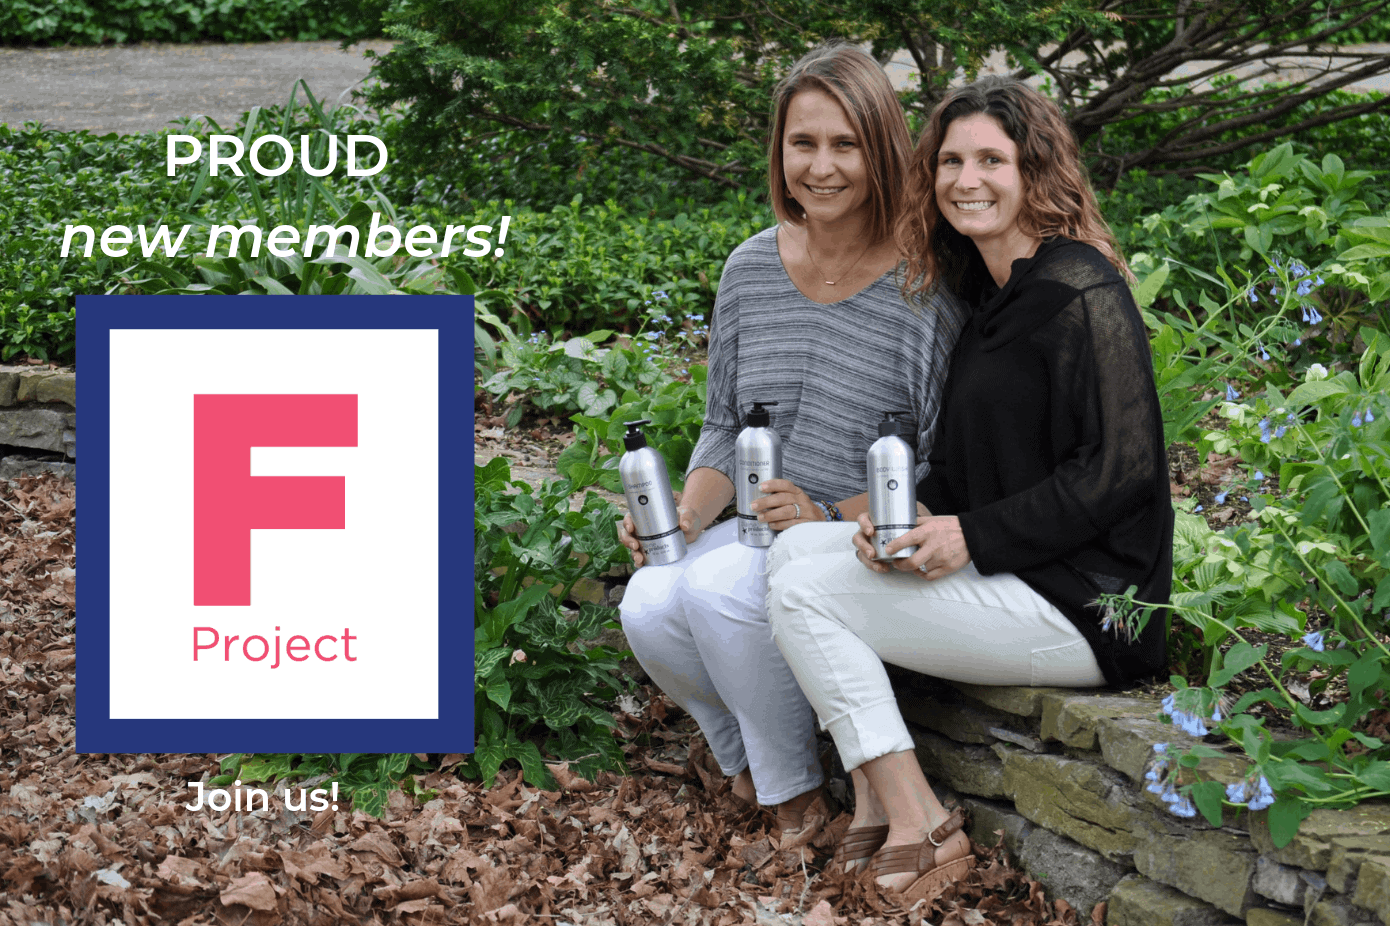 Proud to be Women Owned & Support Other Women Owned Businesses through the F Project